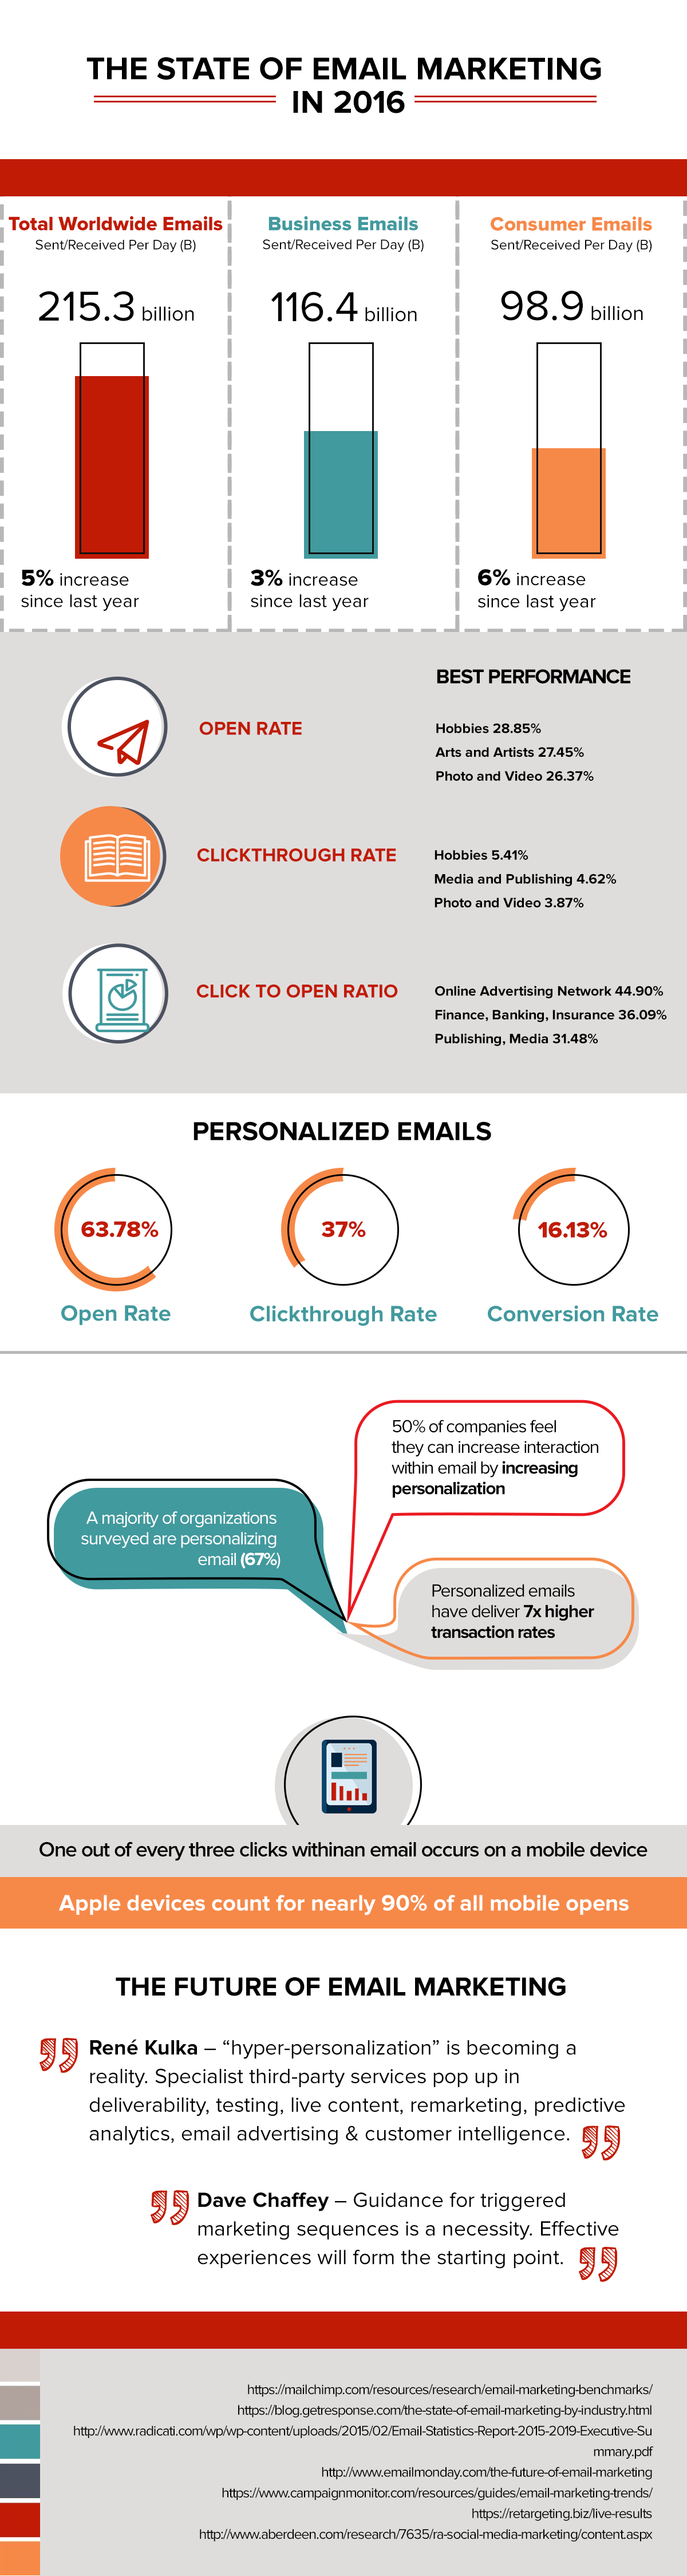 The state of email marketing 2016